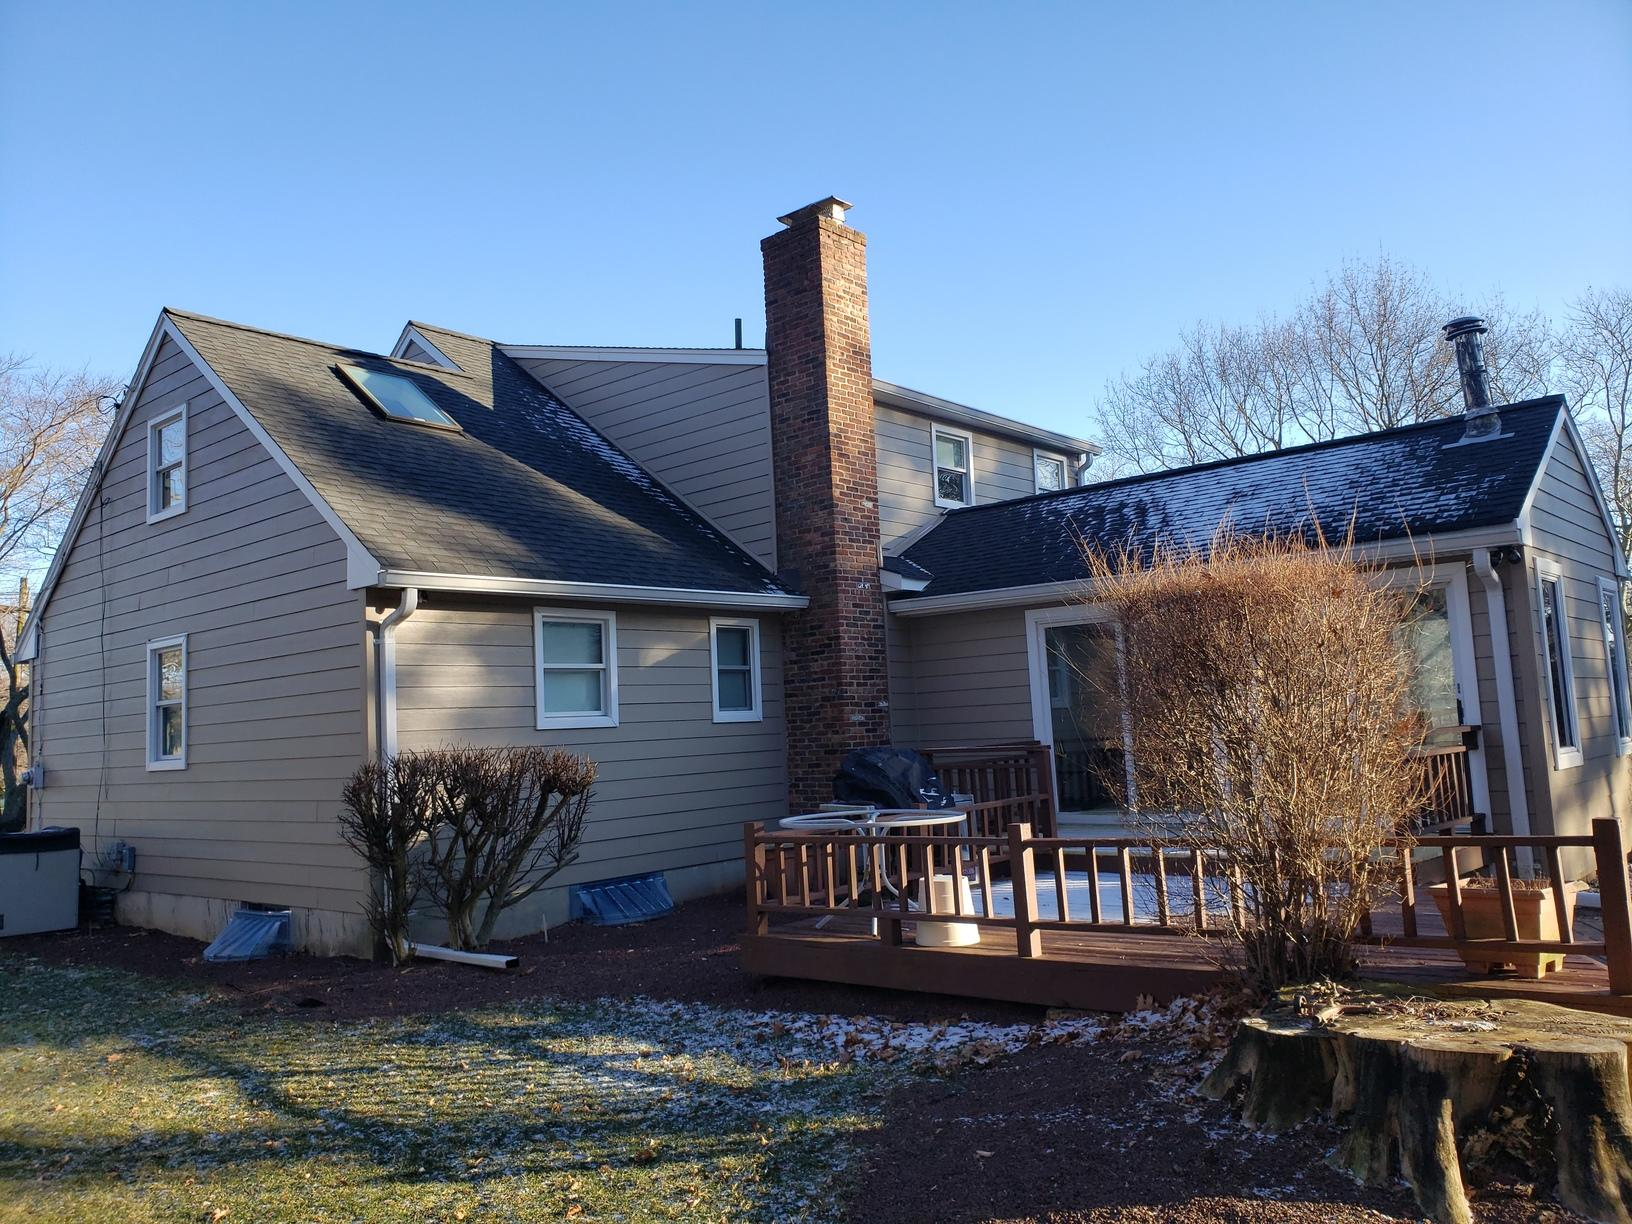 Patio Space with New Siding and Windows